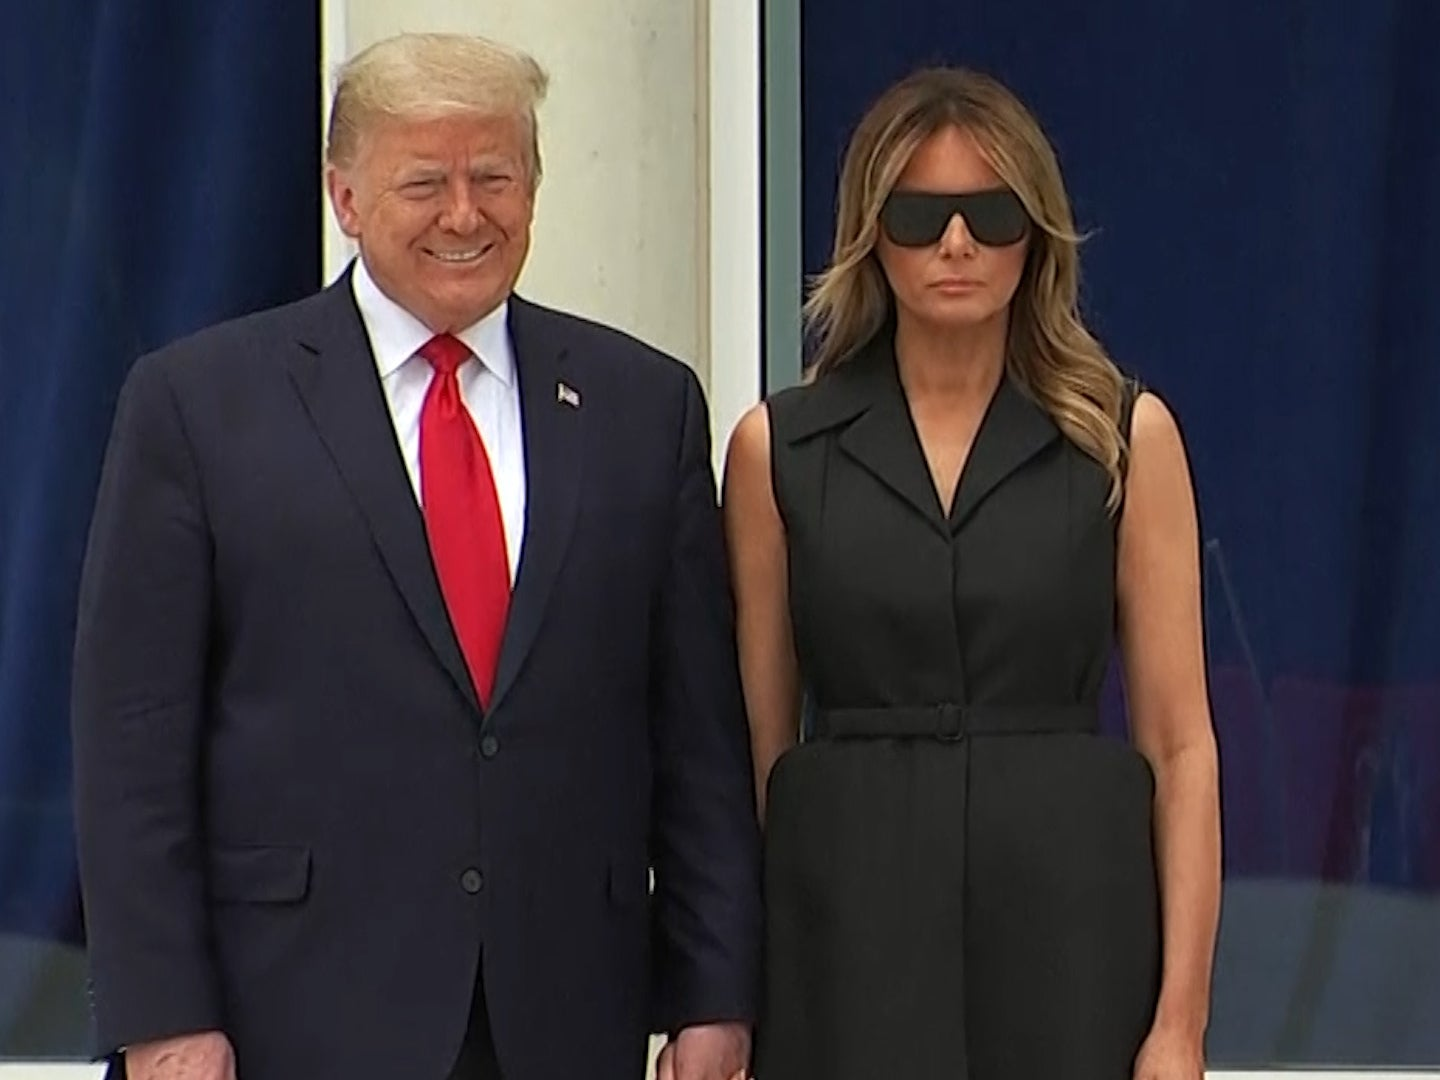 Trump appears to ask Melania to smile during photo op at chapel that infuriated church leaders